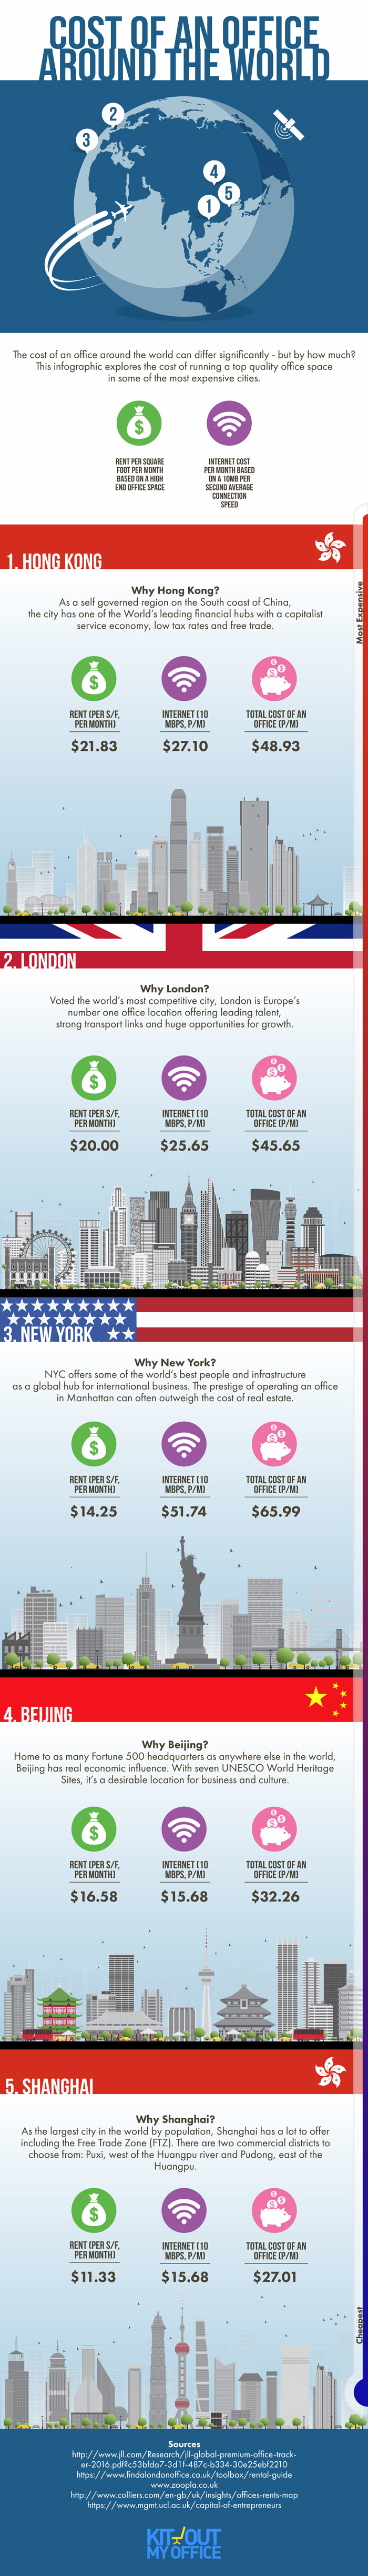 Cost of an Office Around the World